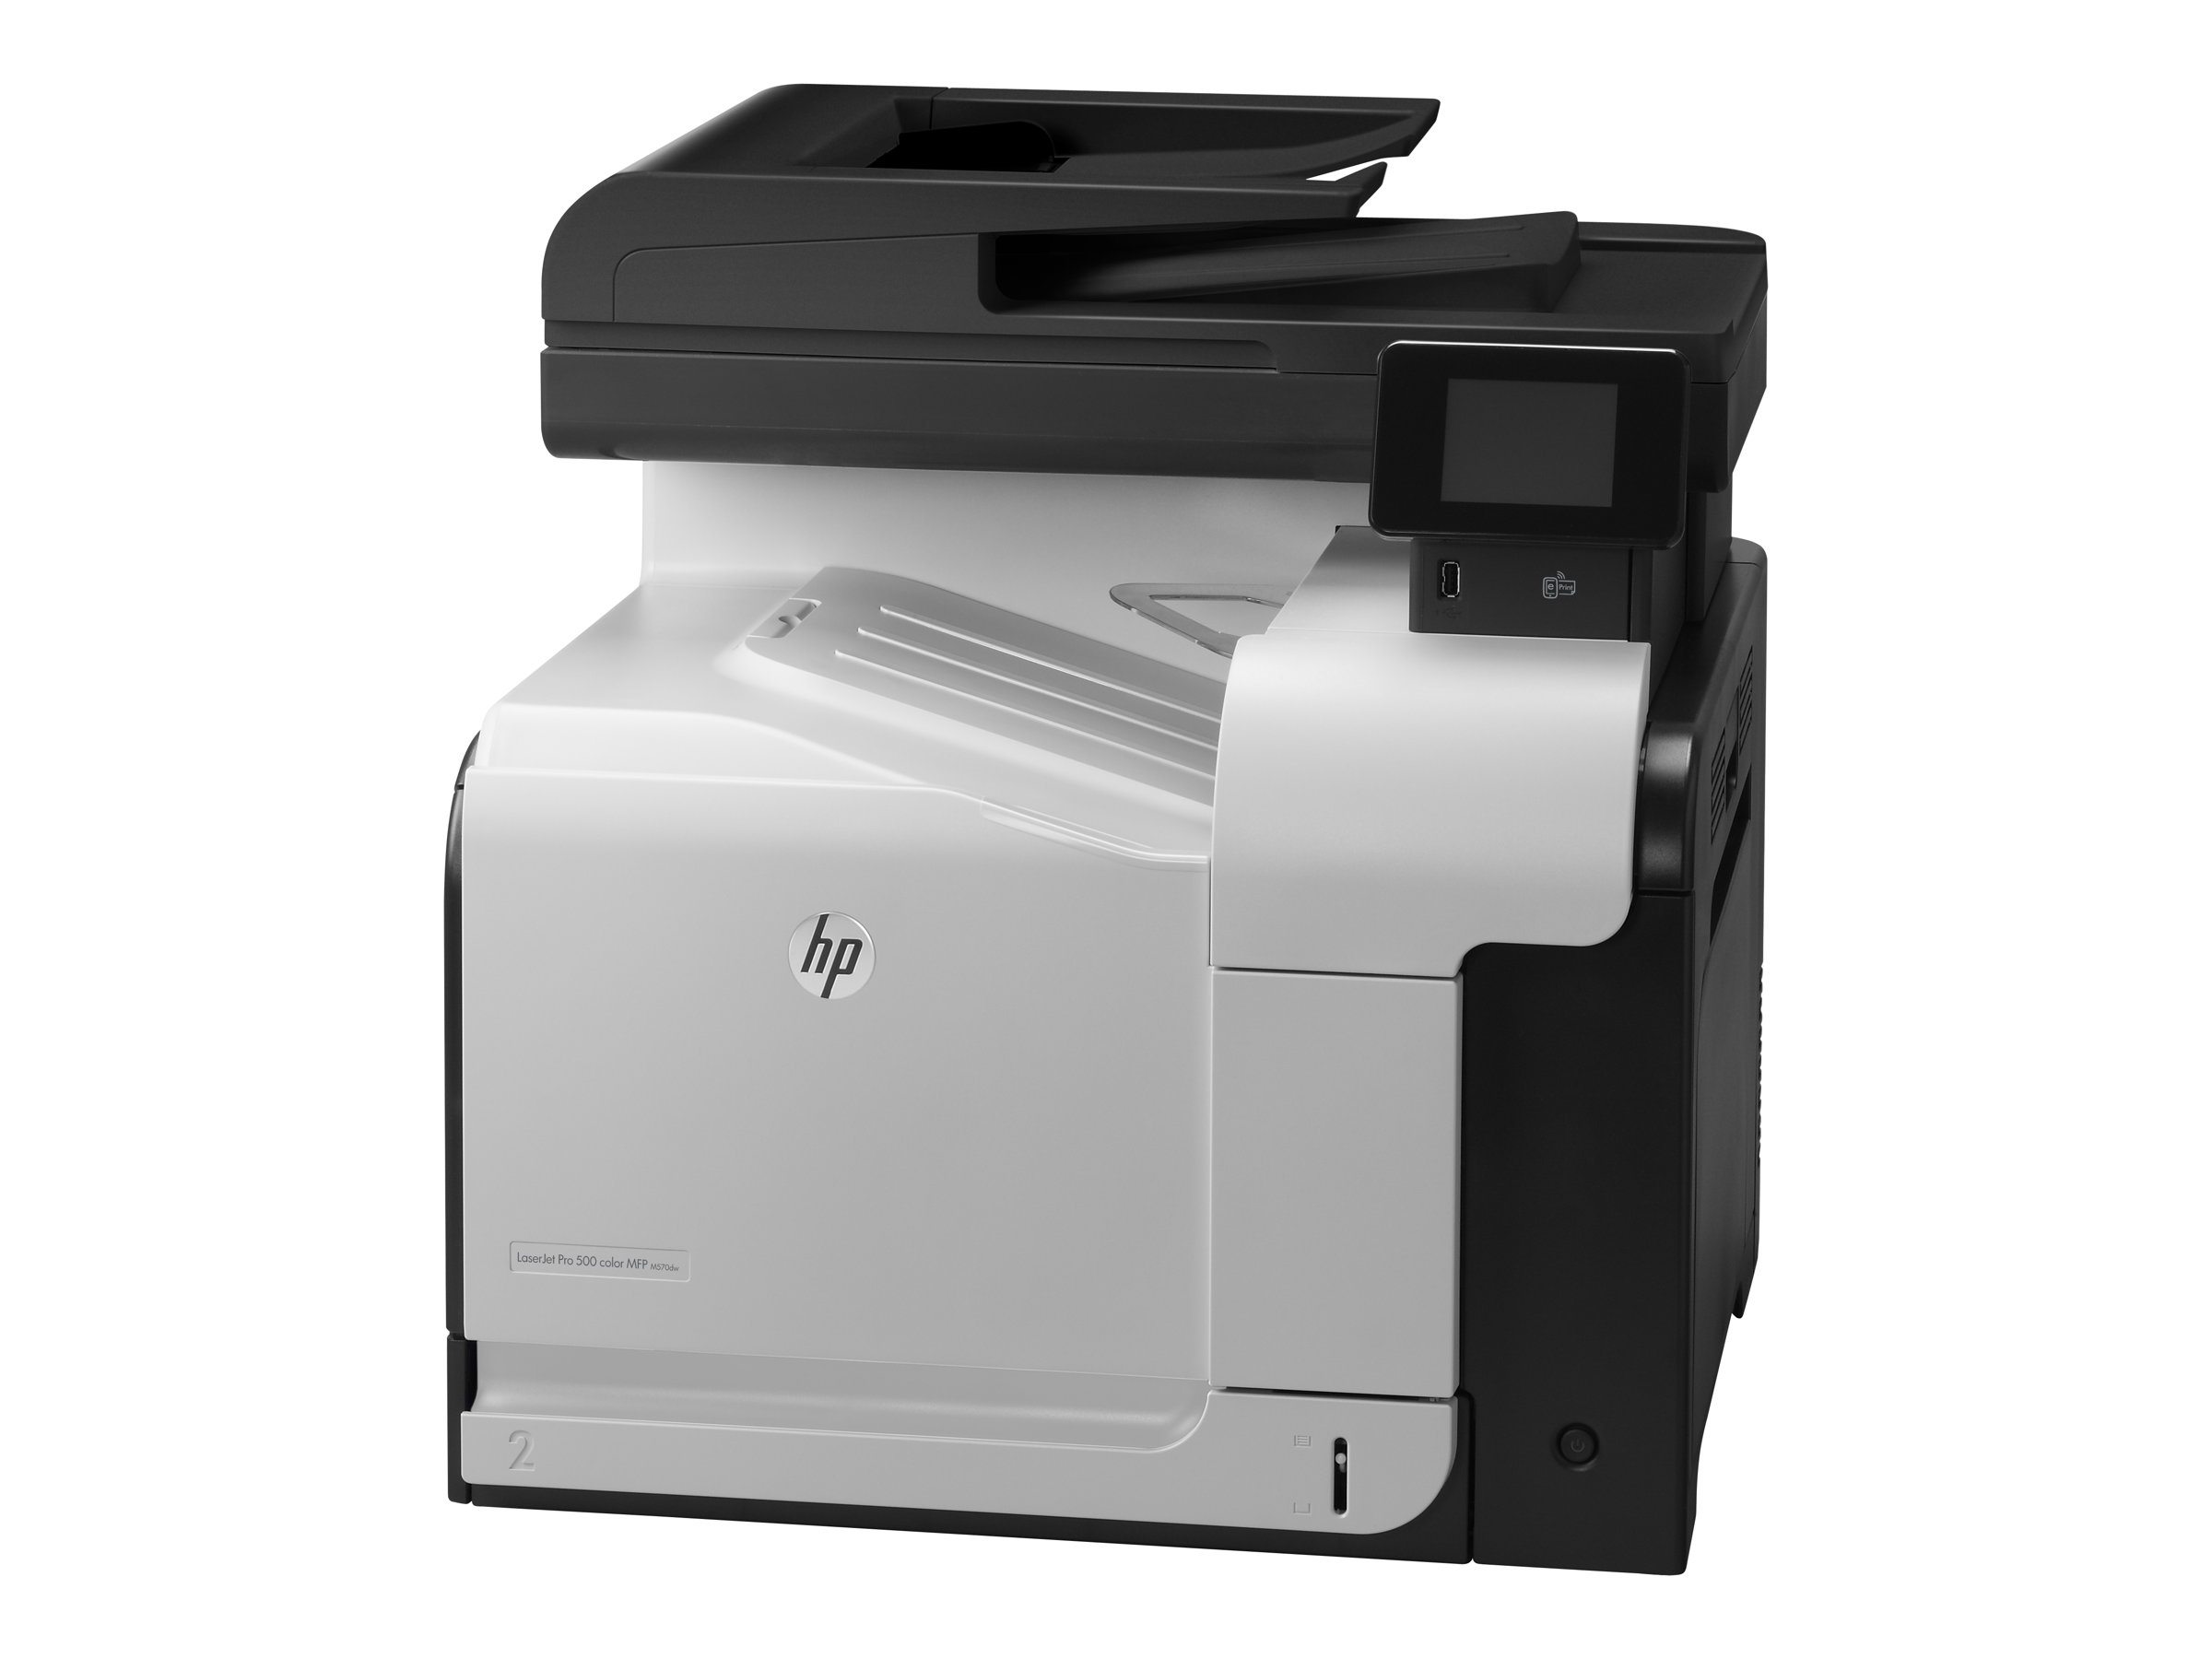 HP LaserJet Pro MFP M570dw - Multifunktionsdrucker - Farbe - Laser - Legal (216 x 356 mm) (Original) - A4/Legal (Medien)